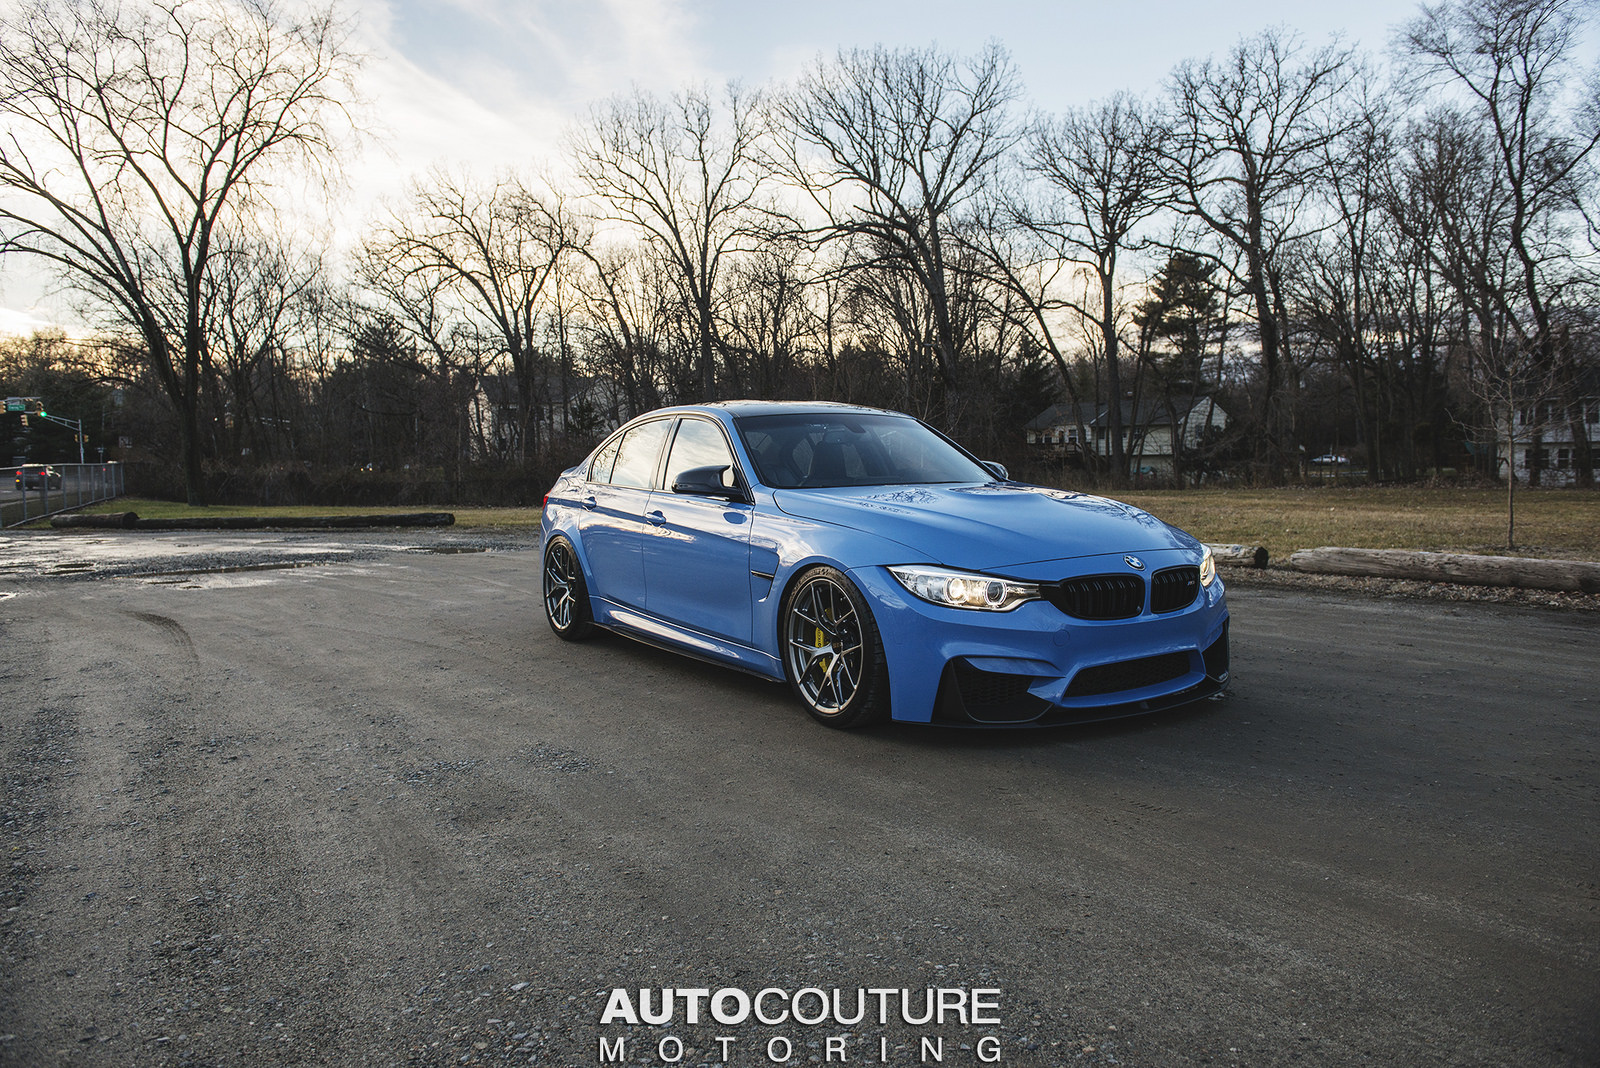 Yas Marina BMW M3 by AUTOCouture Motoring (17)